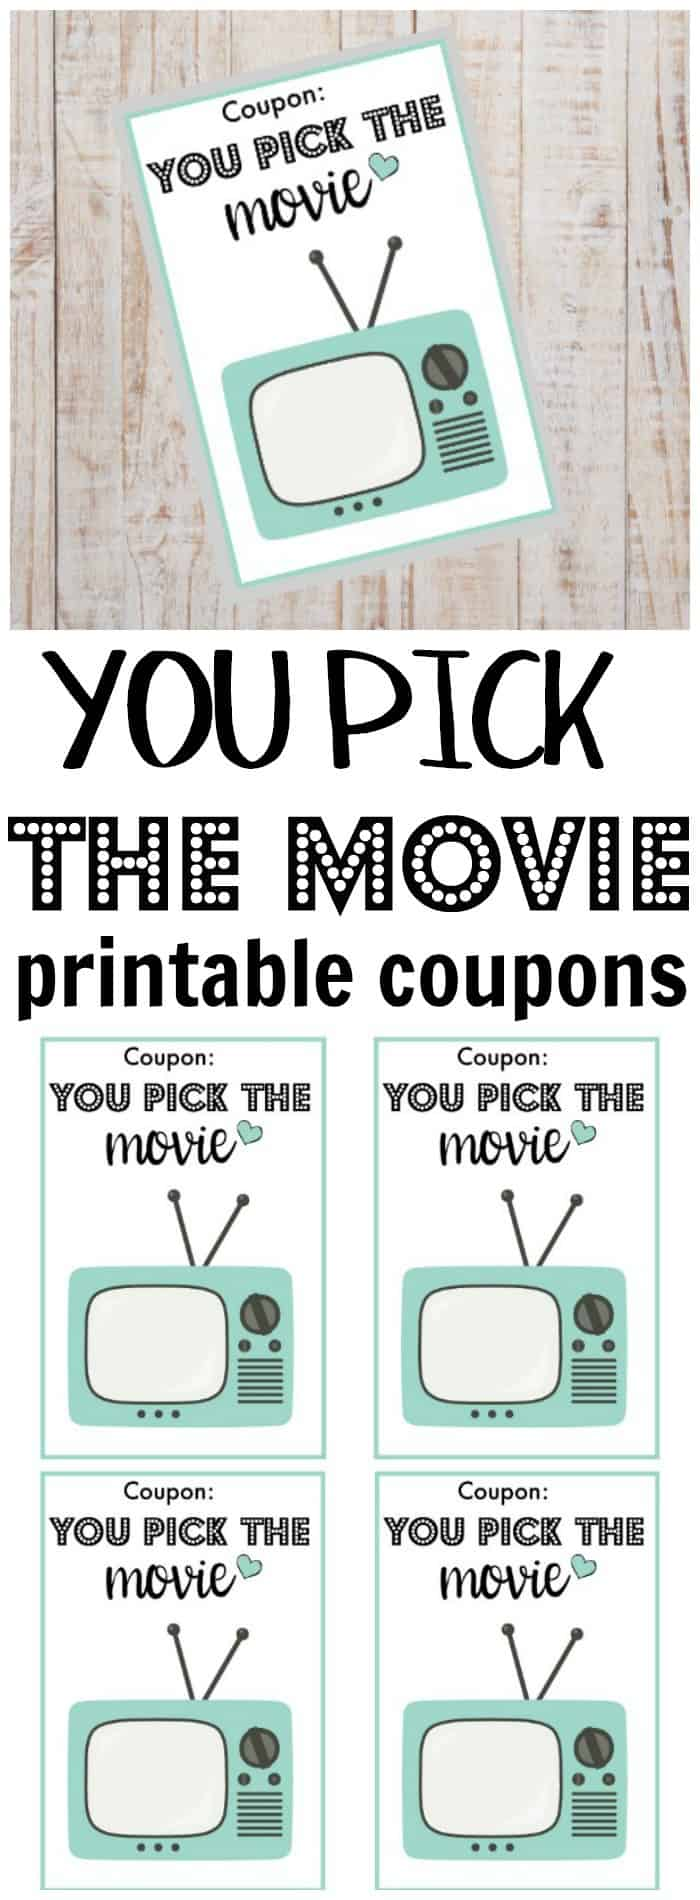 Doing random acts of kindness for your husband is a great way to strengthen your marriage. Grab some free printable You Pick the Movie coupons too! #randomactsofkindness #marriageadvice #marriagetips via @wondermomwannab